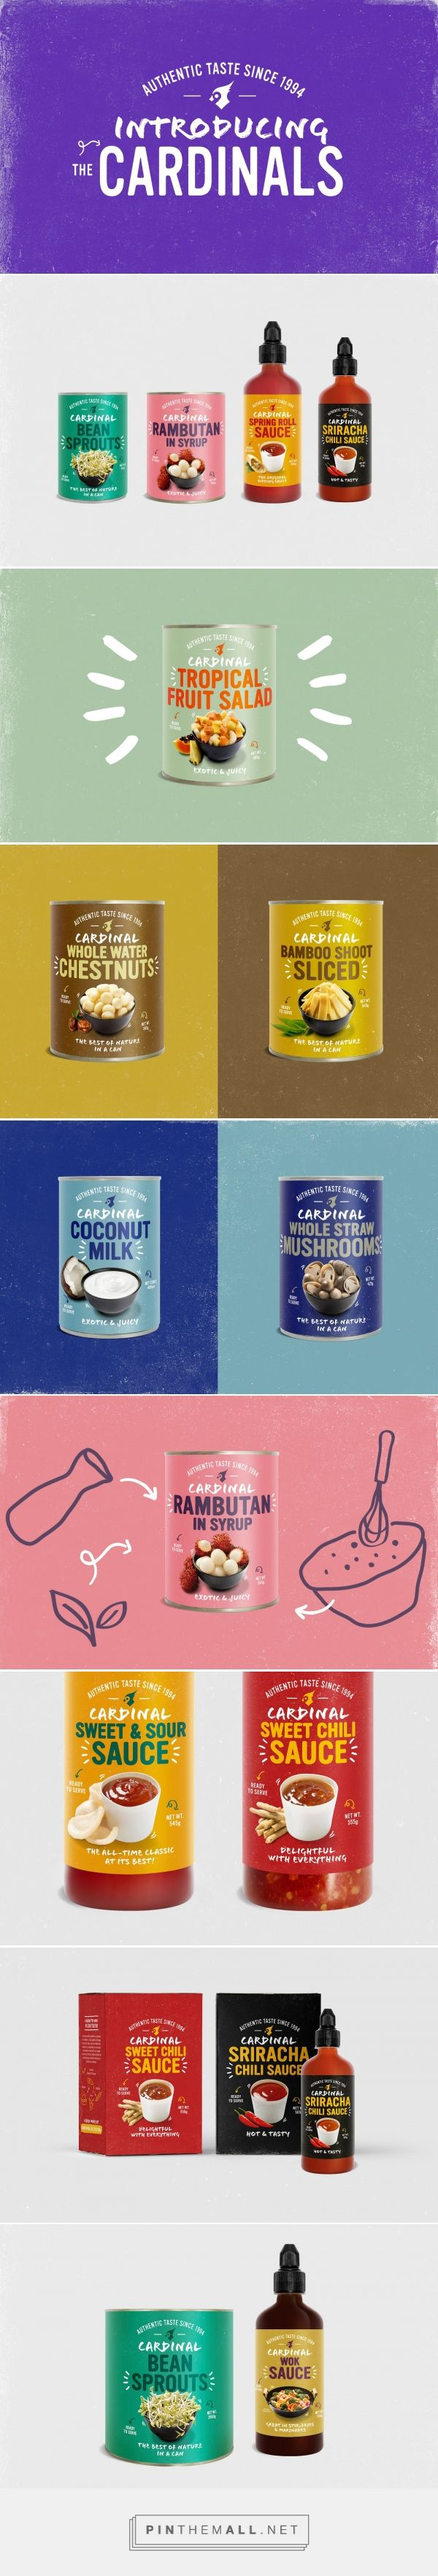 Cardinal, The Food Company - Packaging of the World - Creative Package Design Gallery - http://www.packagingoftheworld.com/2016/12/cardinal-food-company.html